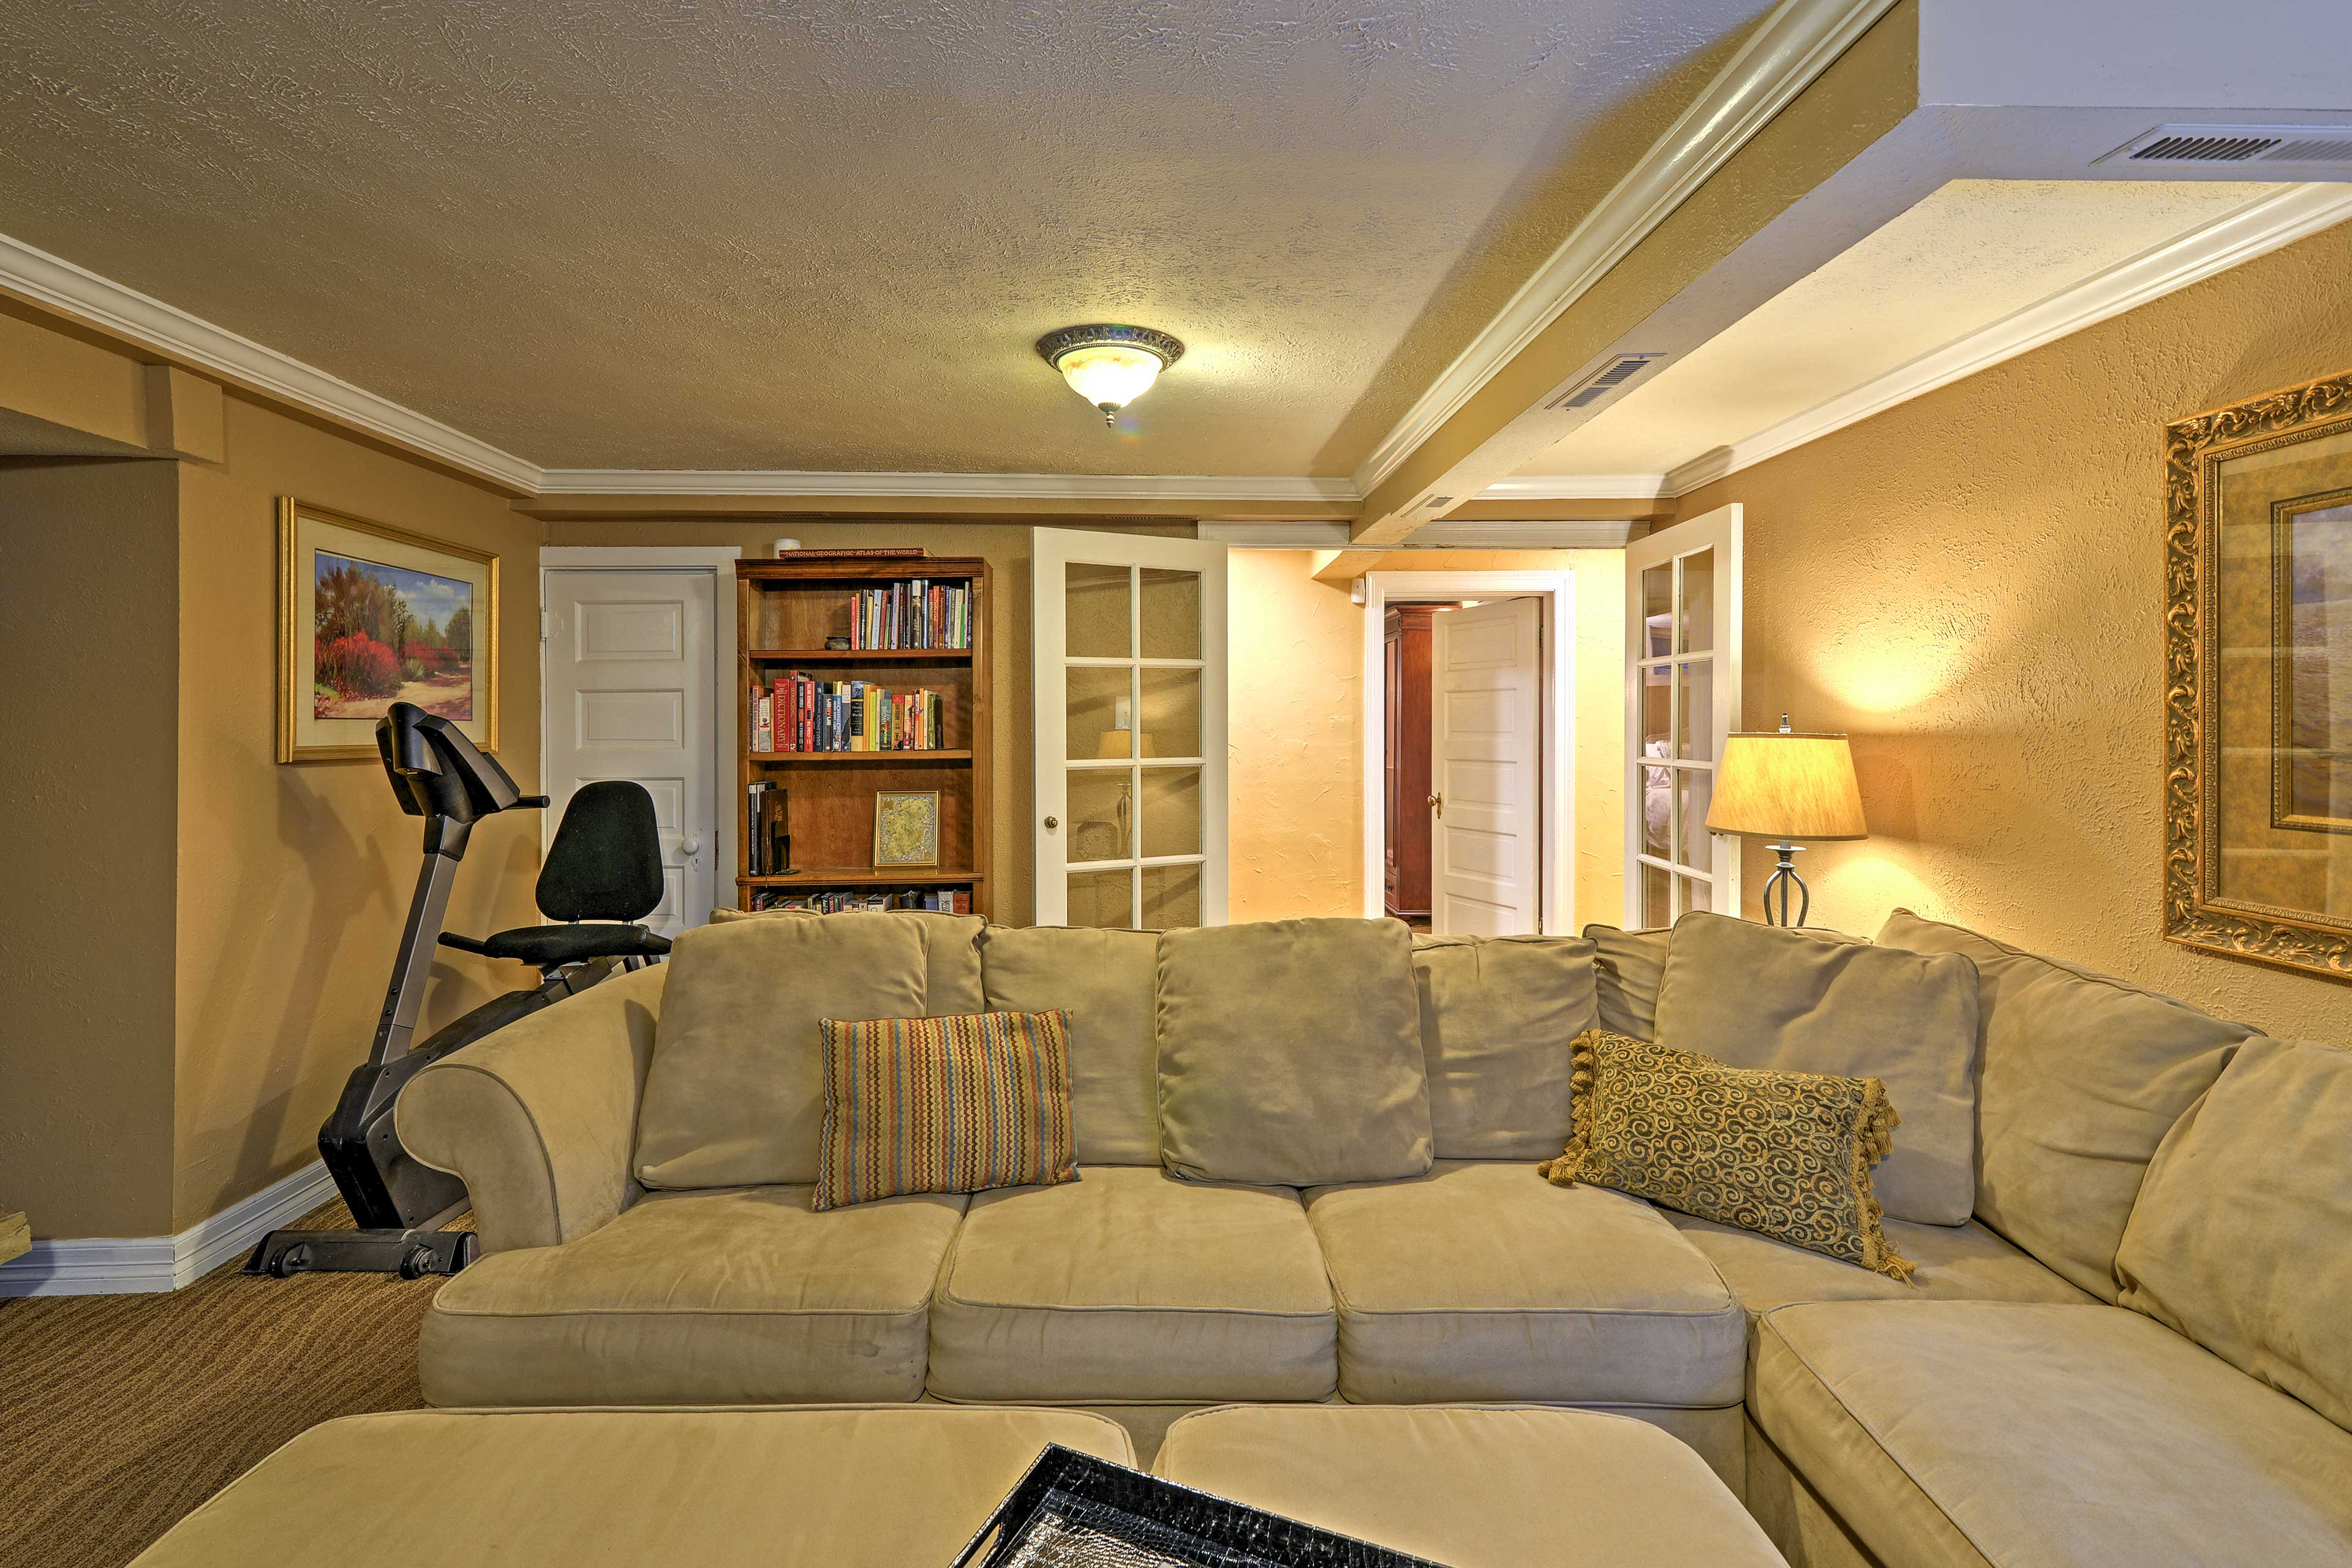 The property is located in Denver's South Park Hill district.